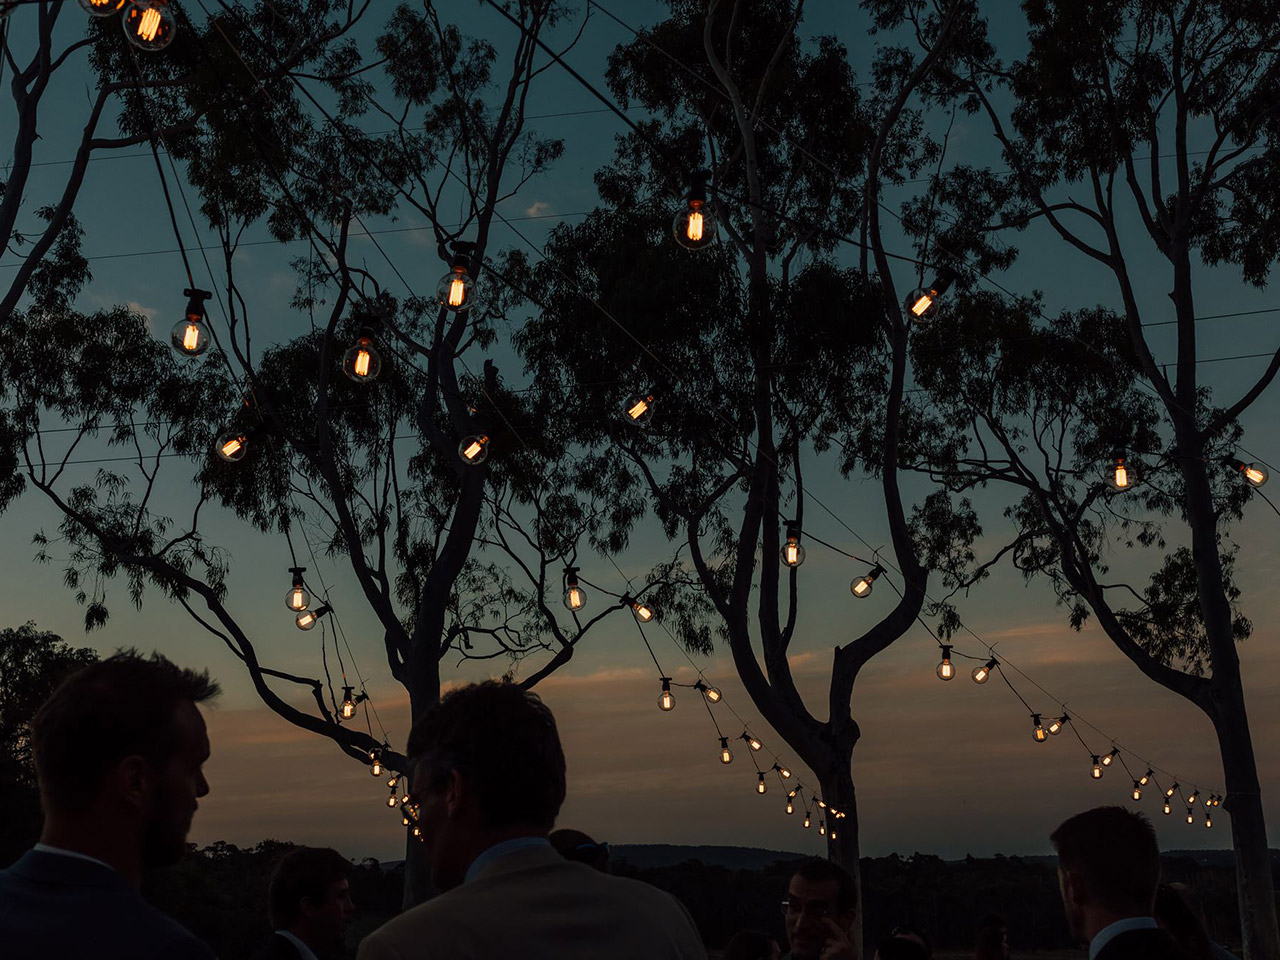 String Lights Under The Trees At Dusk.